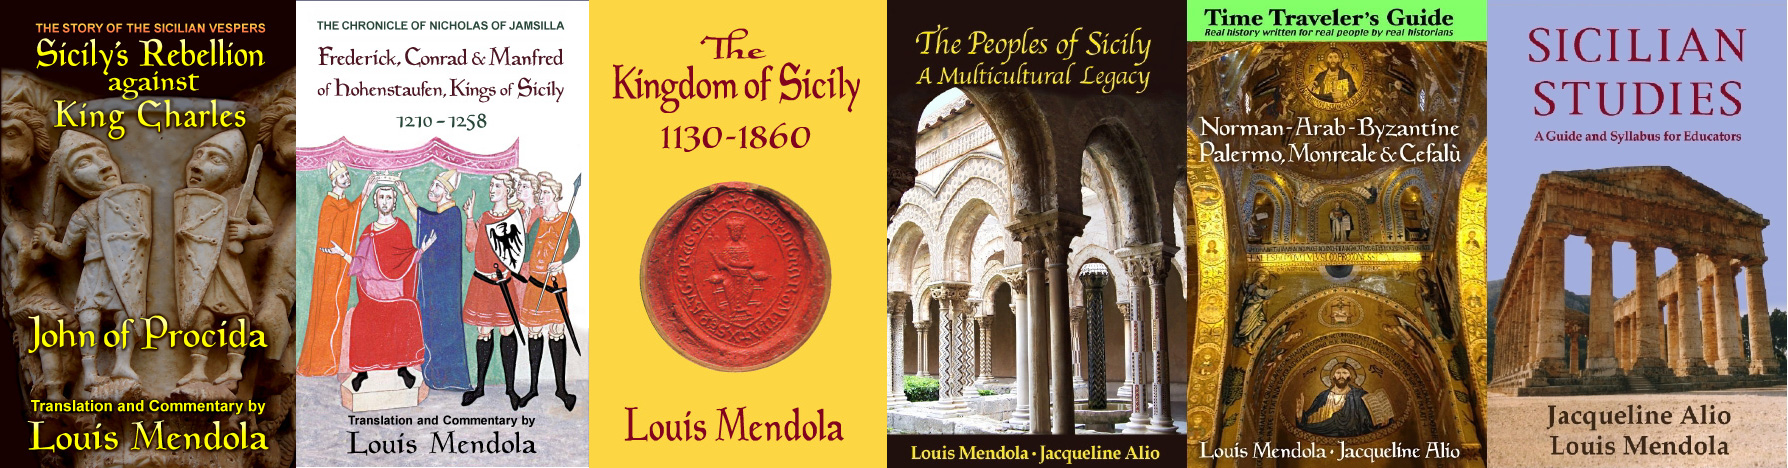 Louis Mendola's books